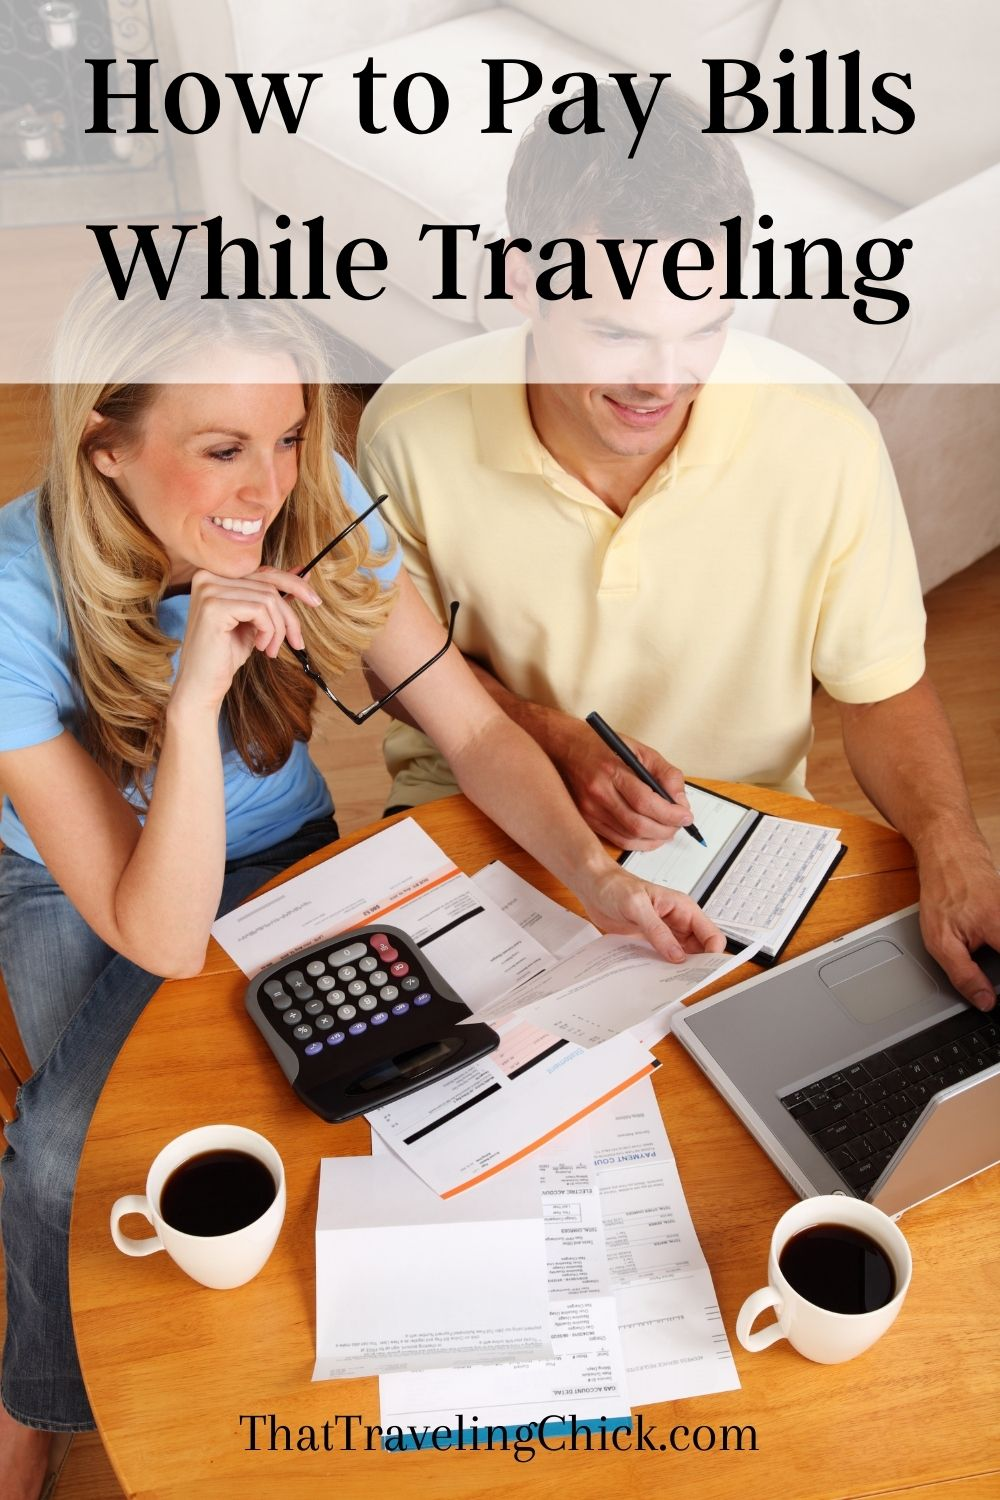 How to Pay Bills While Traveling